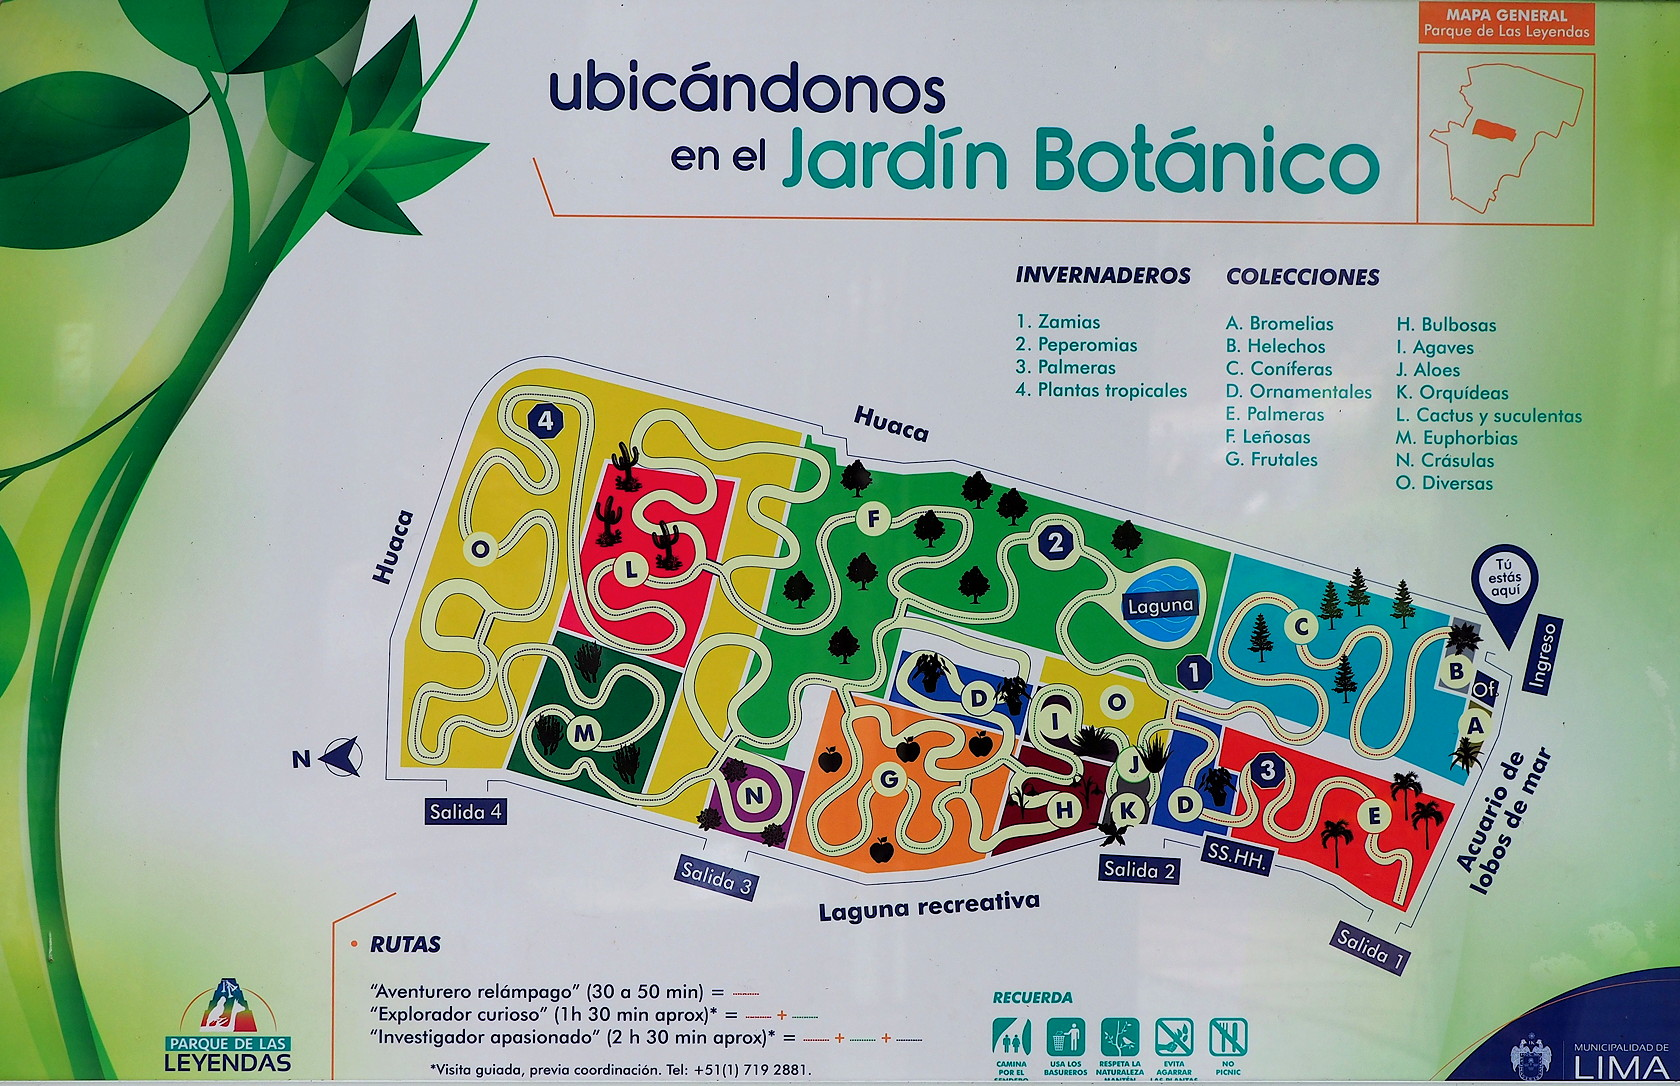 Botanic Garden map showing the different parts of the garden.  Plants are grouped roughly by the type of plant - not specifically by botanical classification.  There is a heavy emphasis on succulent plants - for example the cacti (L), crassulas (N), Agaves and Aloes (I and J), and Euphorbias (M).  Palms (E), conifers (c) and various trees (F) and fruit trees make up most of the garden.